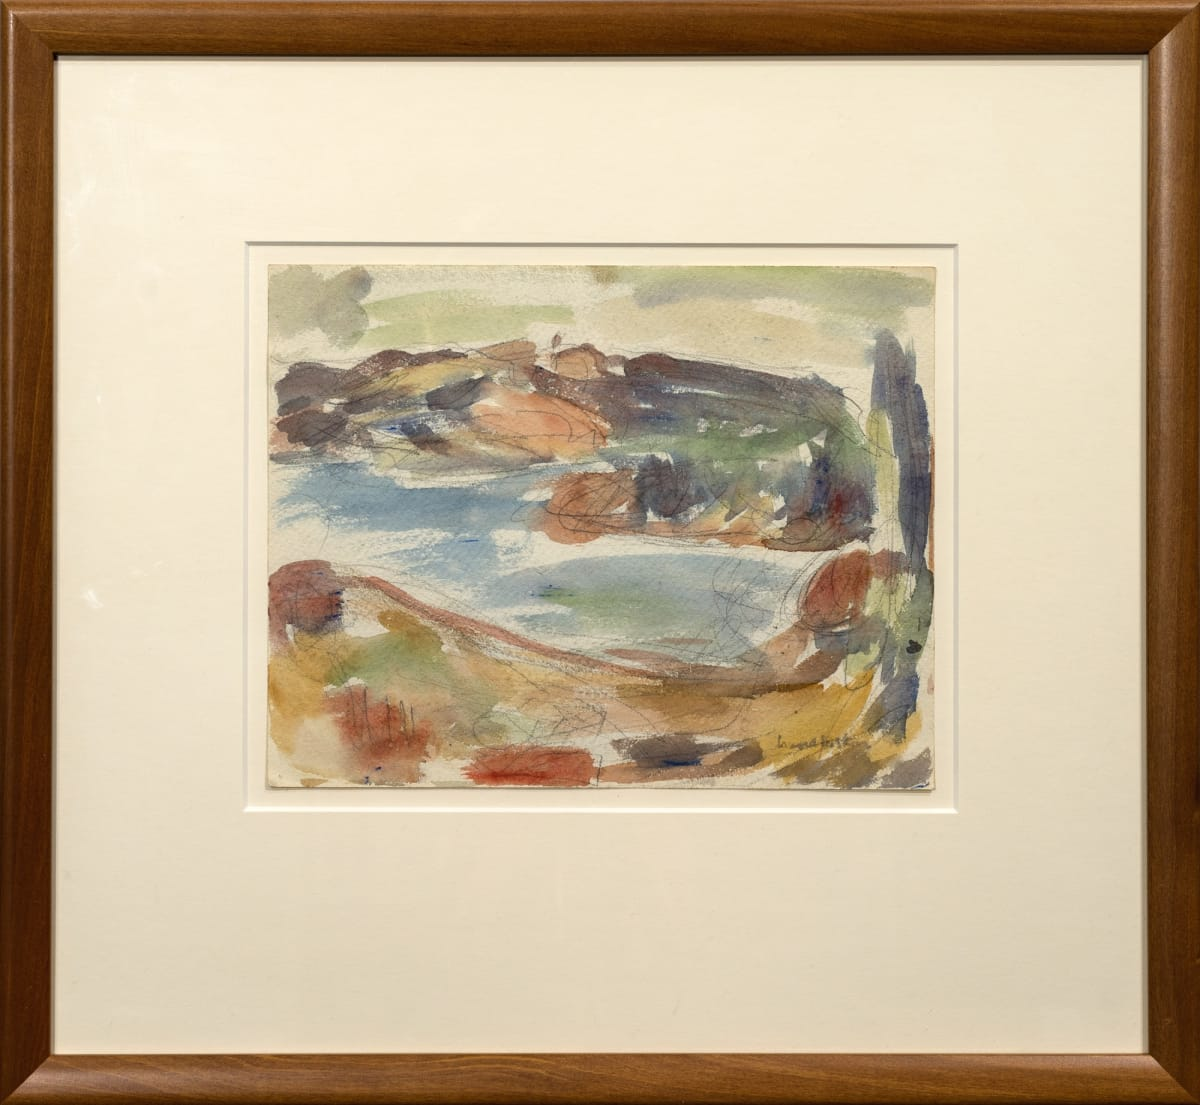 Mountford Tosswill Woollaston, Untitled [Landscape] (5), n.d.